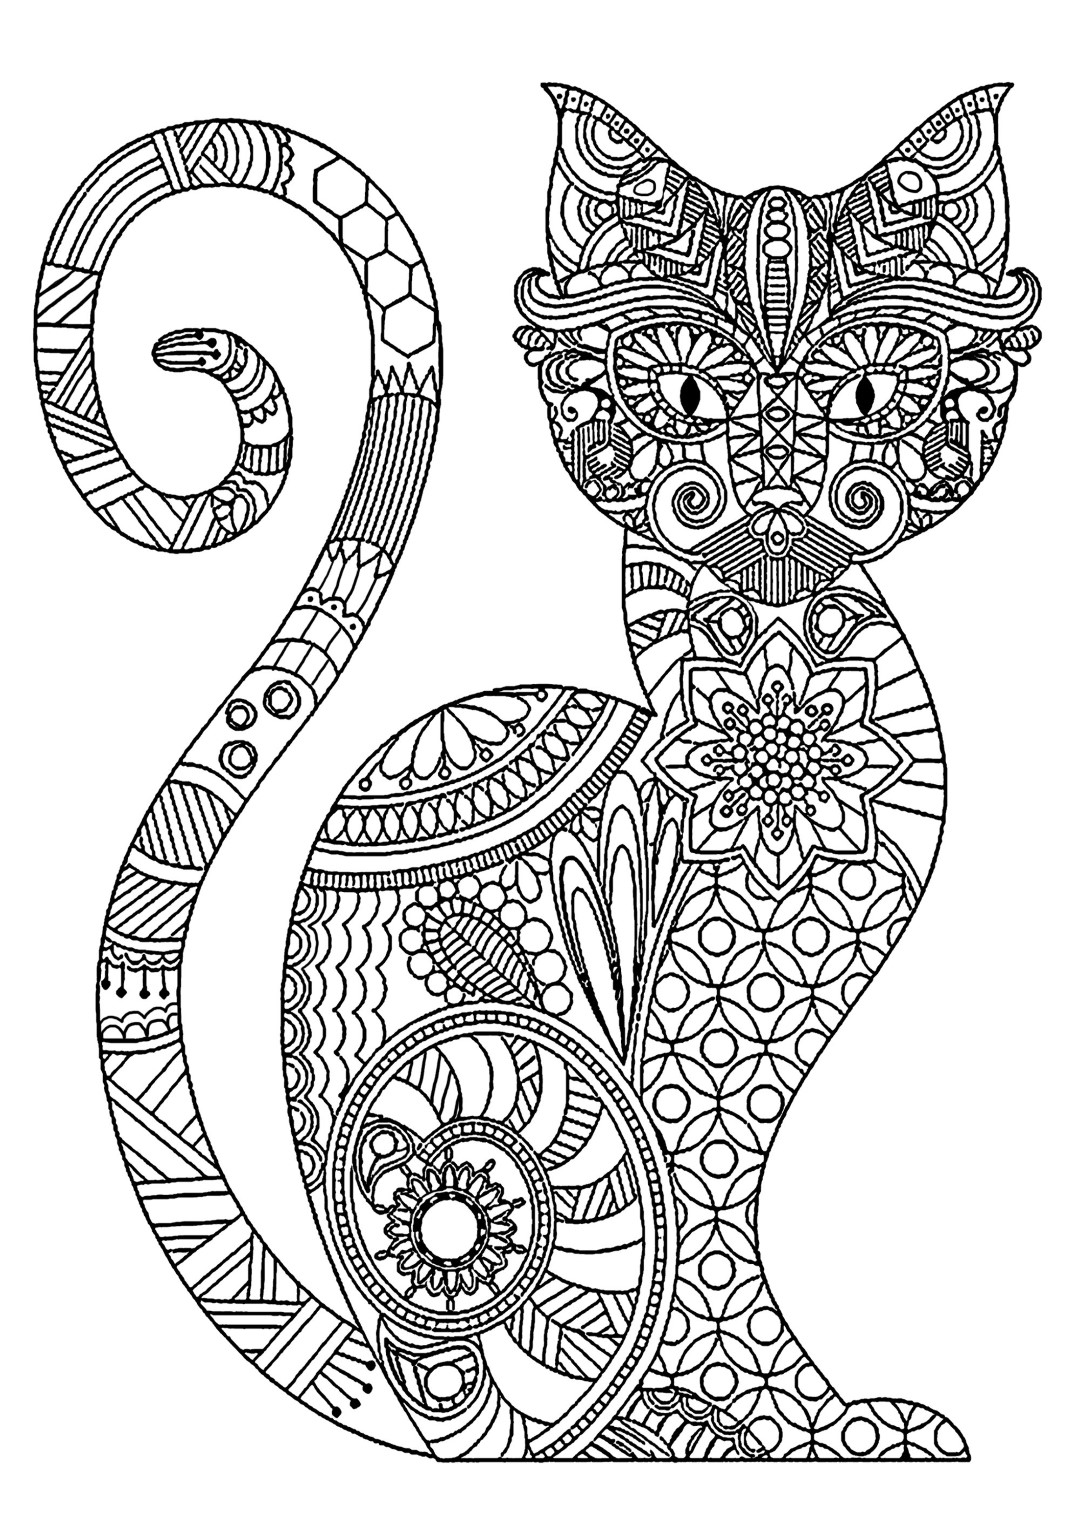 Zentangle Cat Coloring Page for Adults